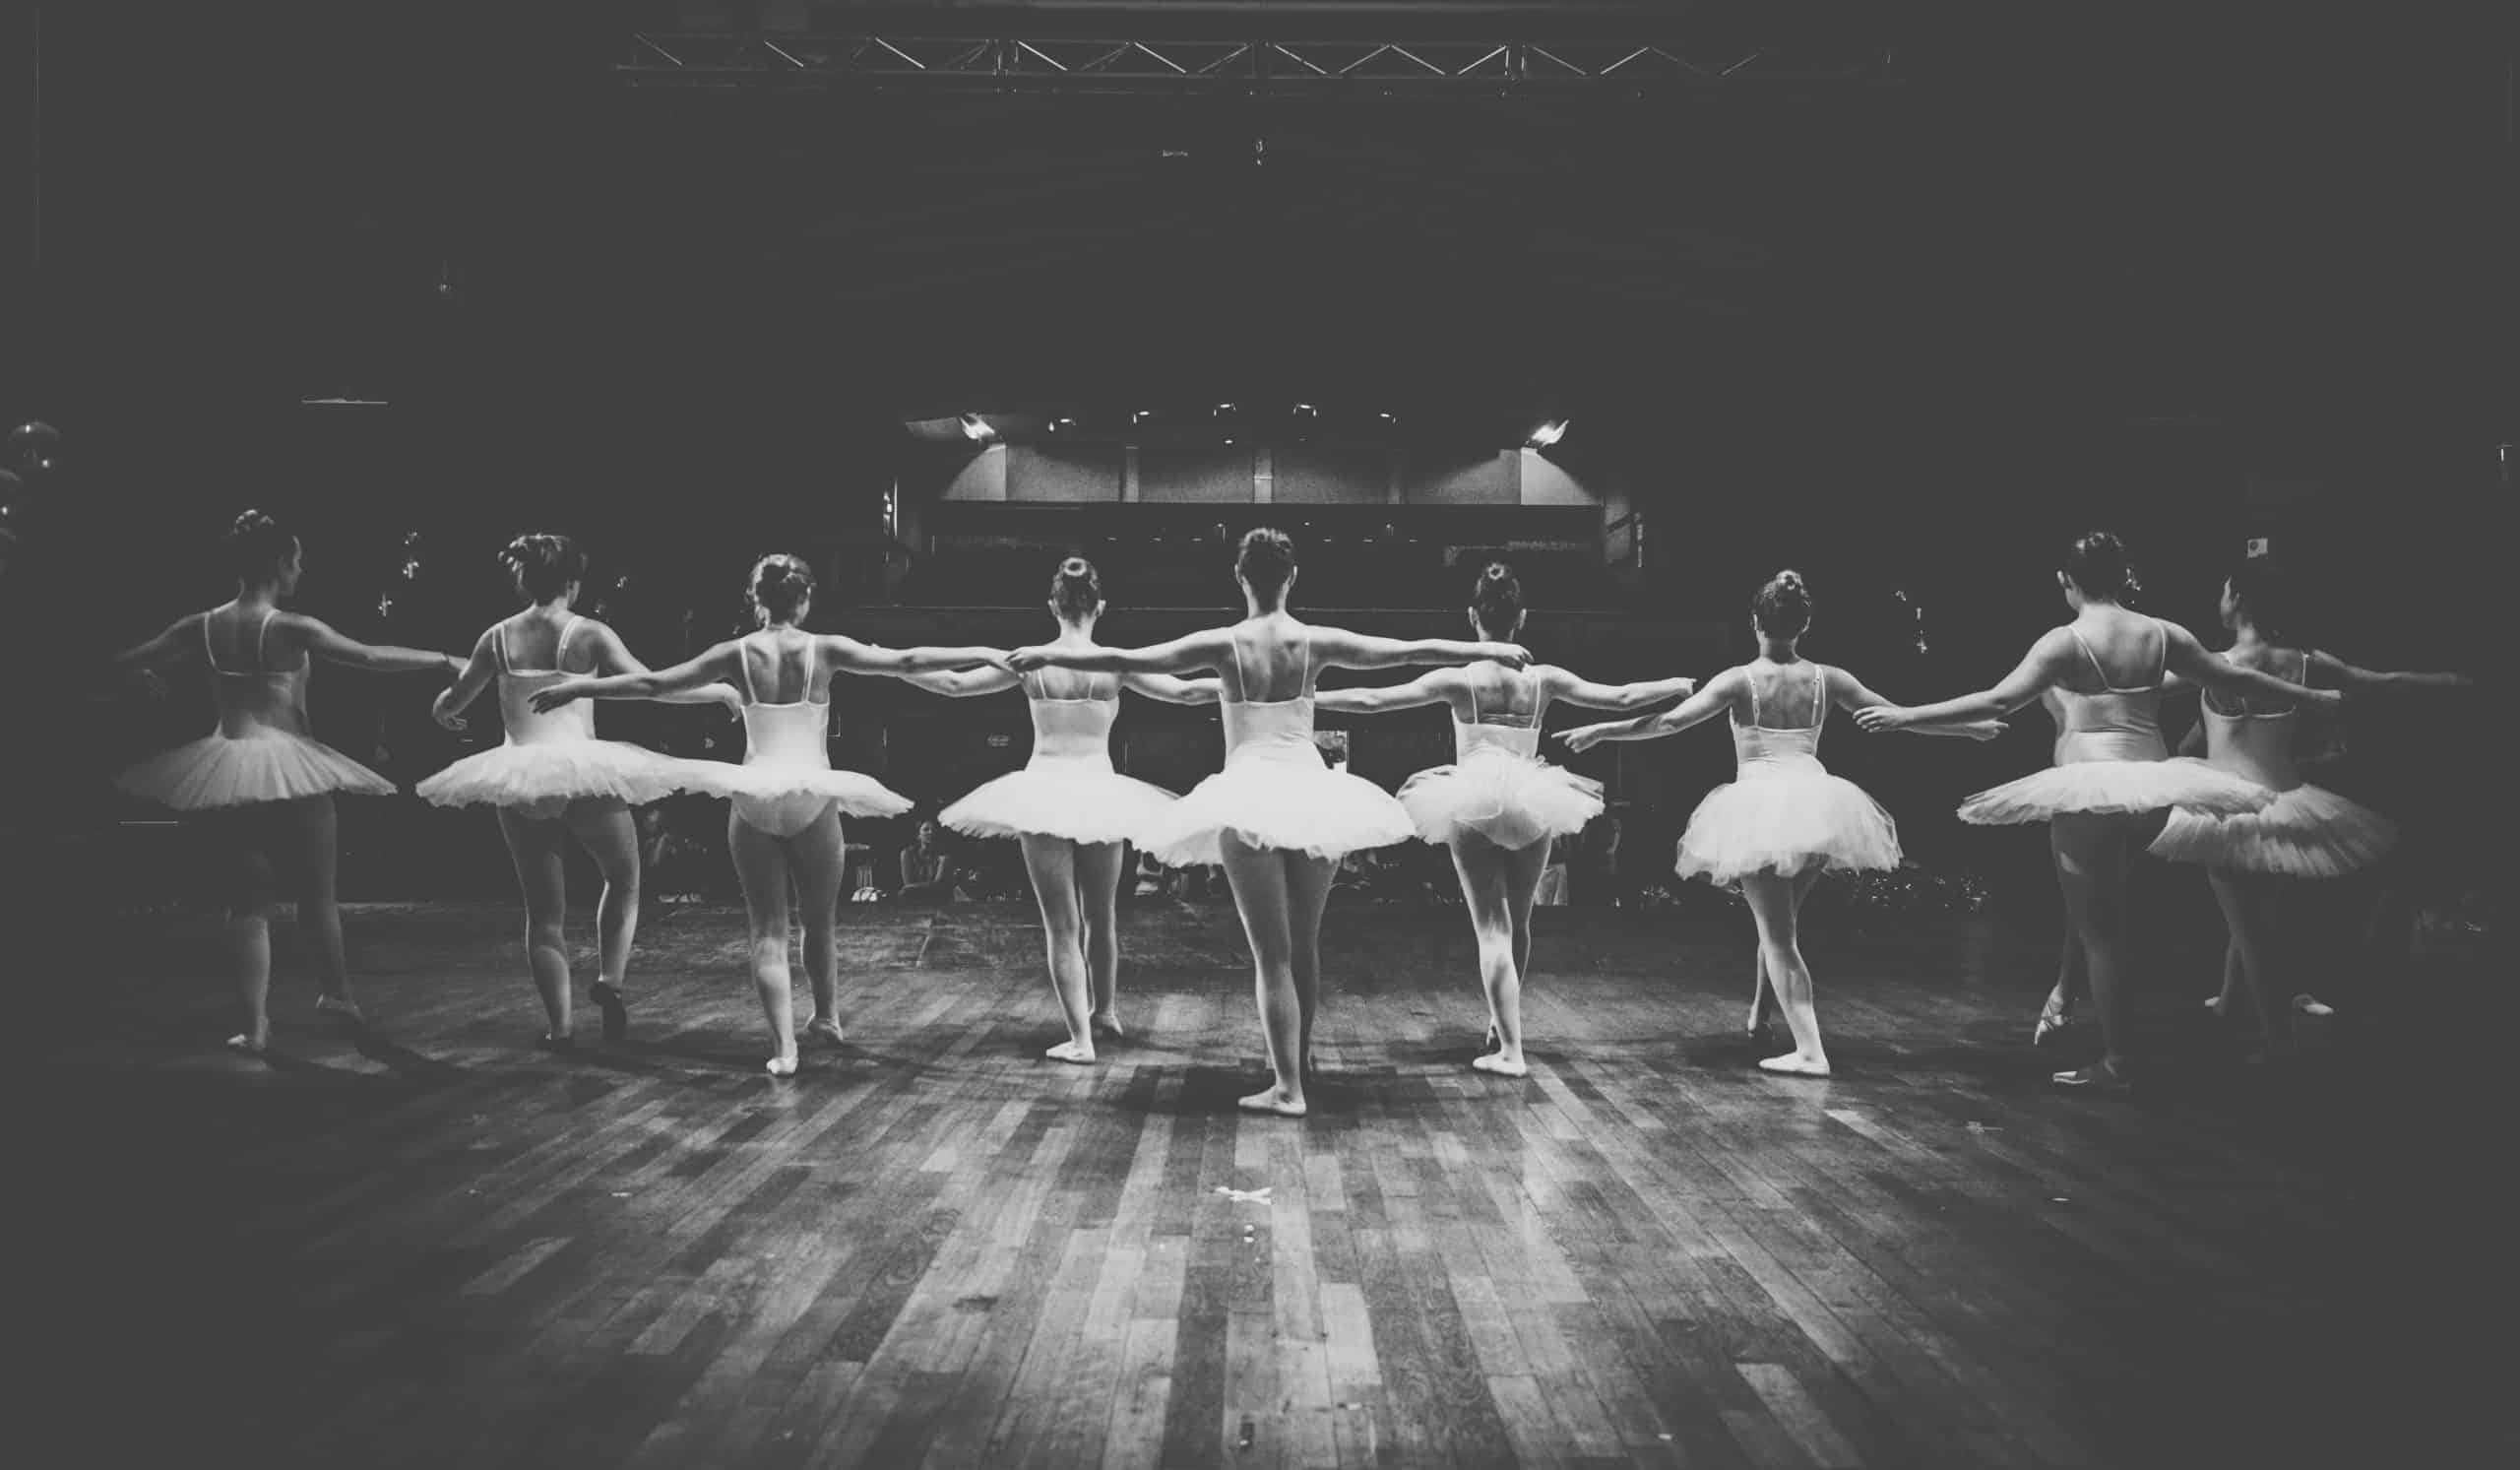 Best Choreography course tutorial class certification training online